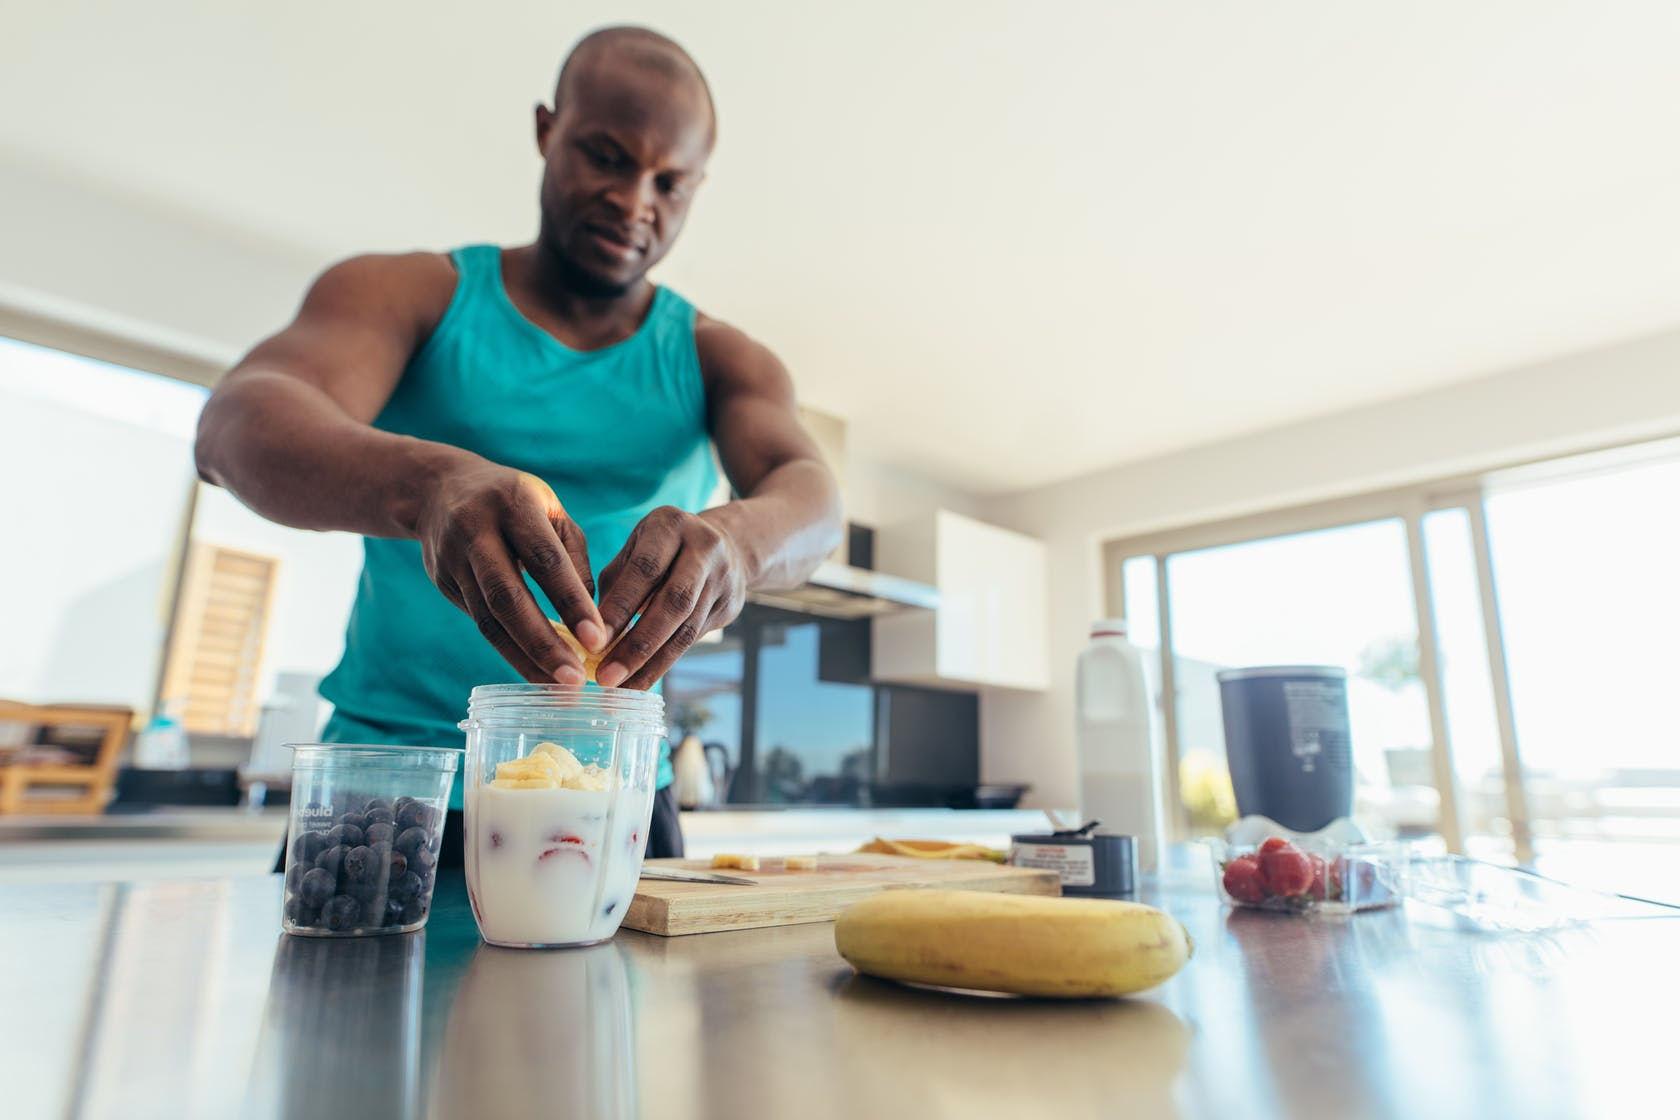 The Cyclical Ketogenic Diet: Benefits and How To Follow It